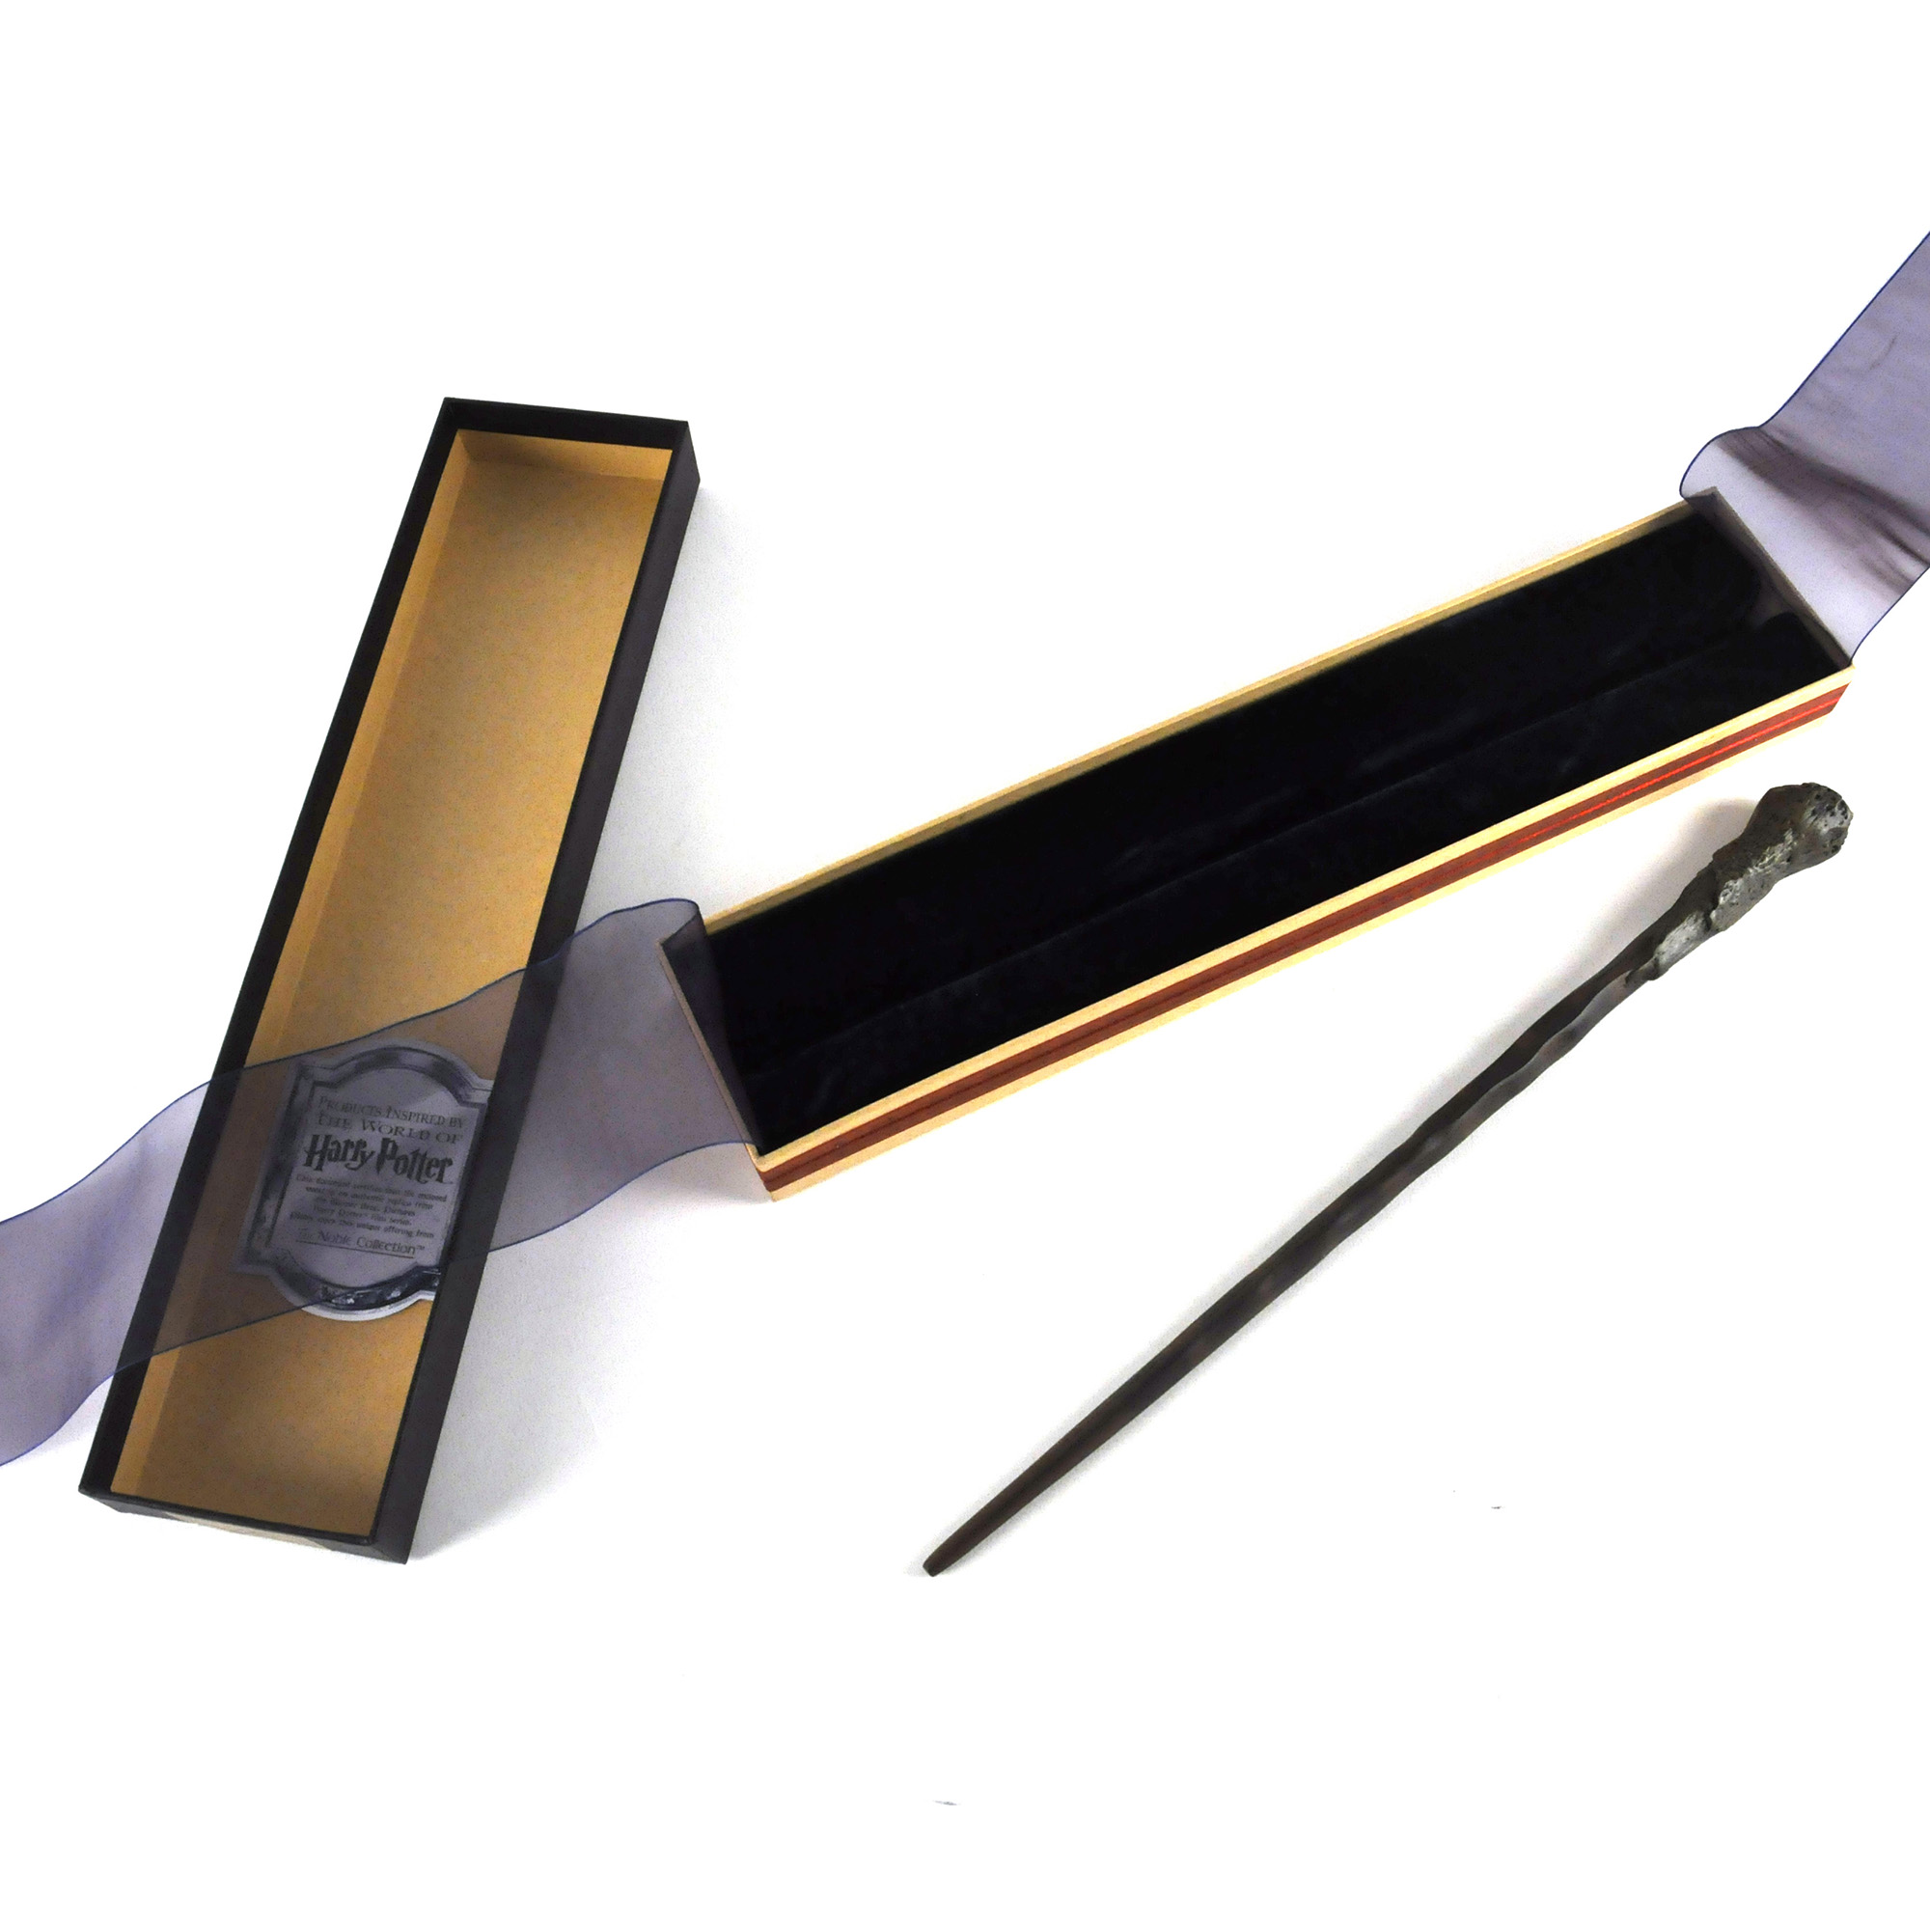 Harry potter replica ron weasley wand with ollivanders box pink harry potter replica ron weasley wand with ollivanders box bookmarktalkfo Image collections